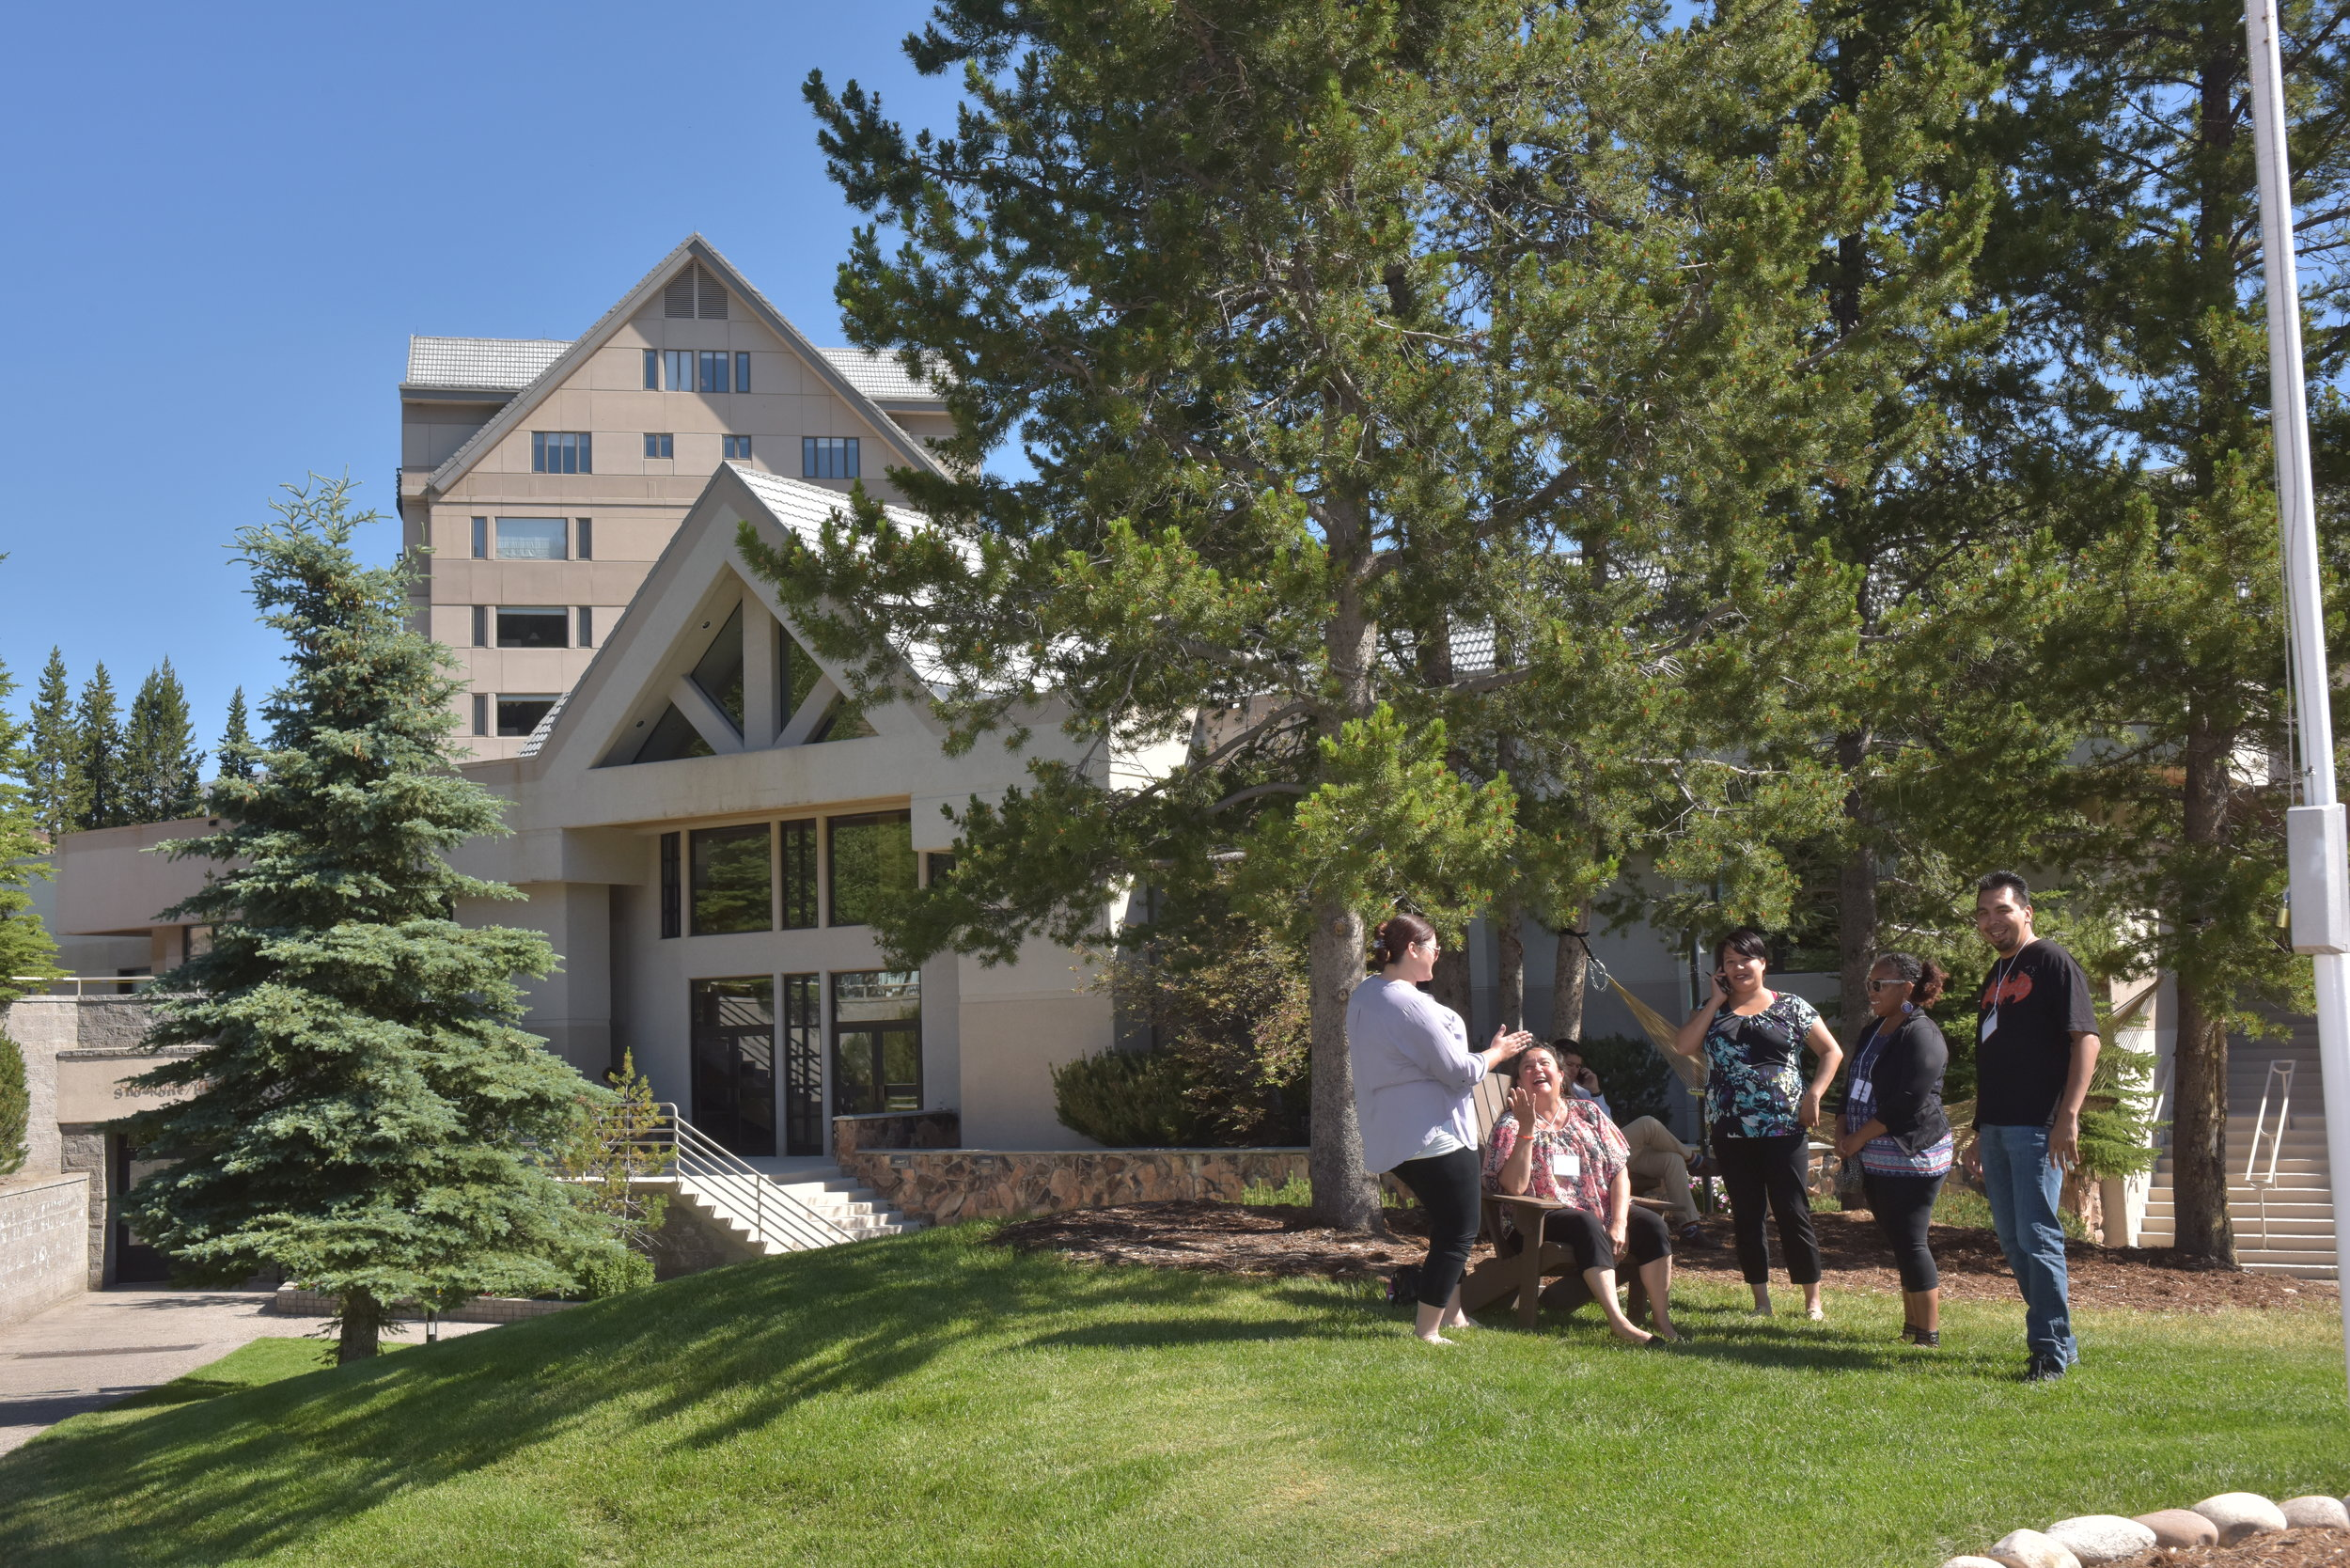 2017 participants talk outside the yellowstone conference center at big sky resort.